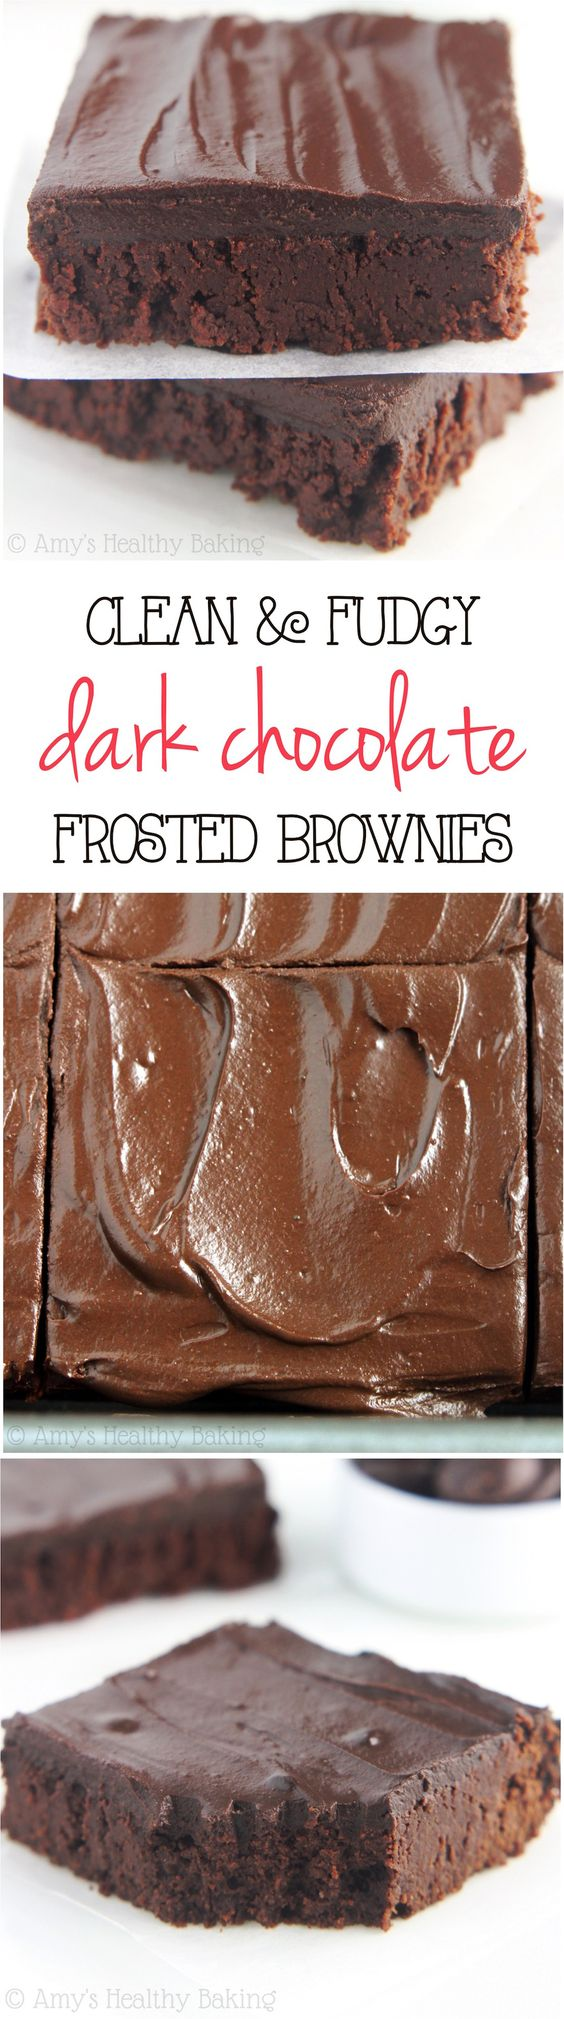 Clean-Eating Fudgy Dark Chocolate Frosted Brownies -- these skinny brownies don't taste healthy at all! They're insanely rich, as easy as a box mix & are only 100 calories! http://amyshealthybaking.com/blog/2015/02/04/clean-fudgy-dark-chocolate-frosted-brownies/